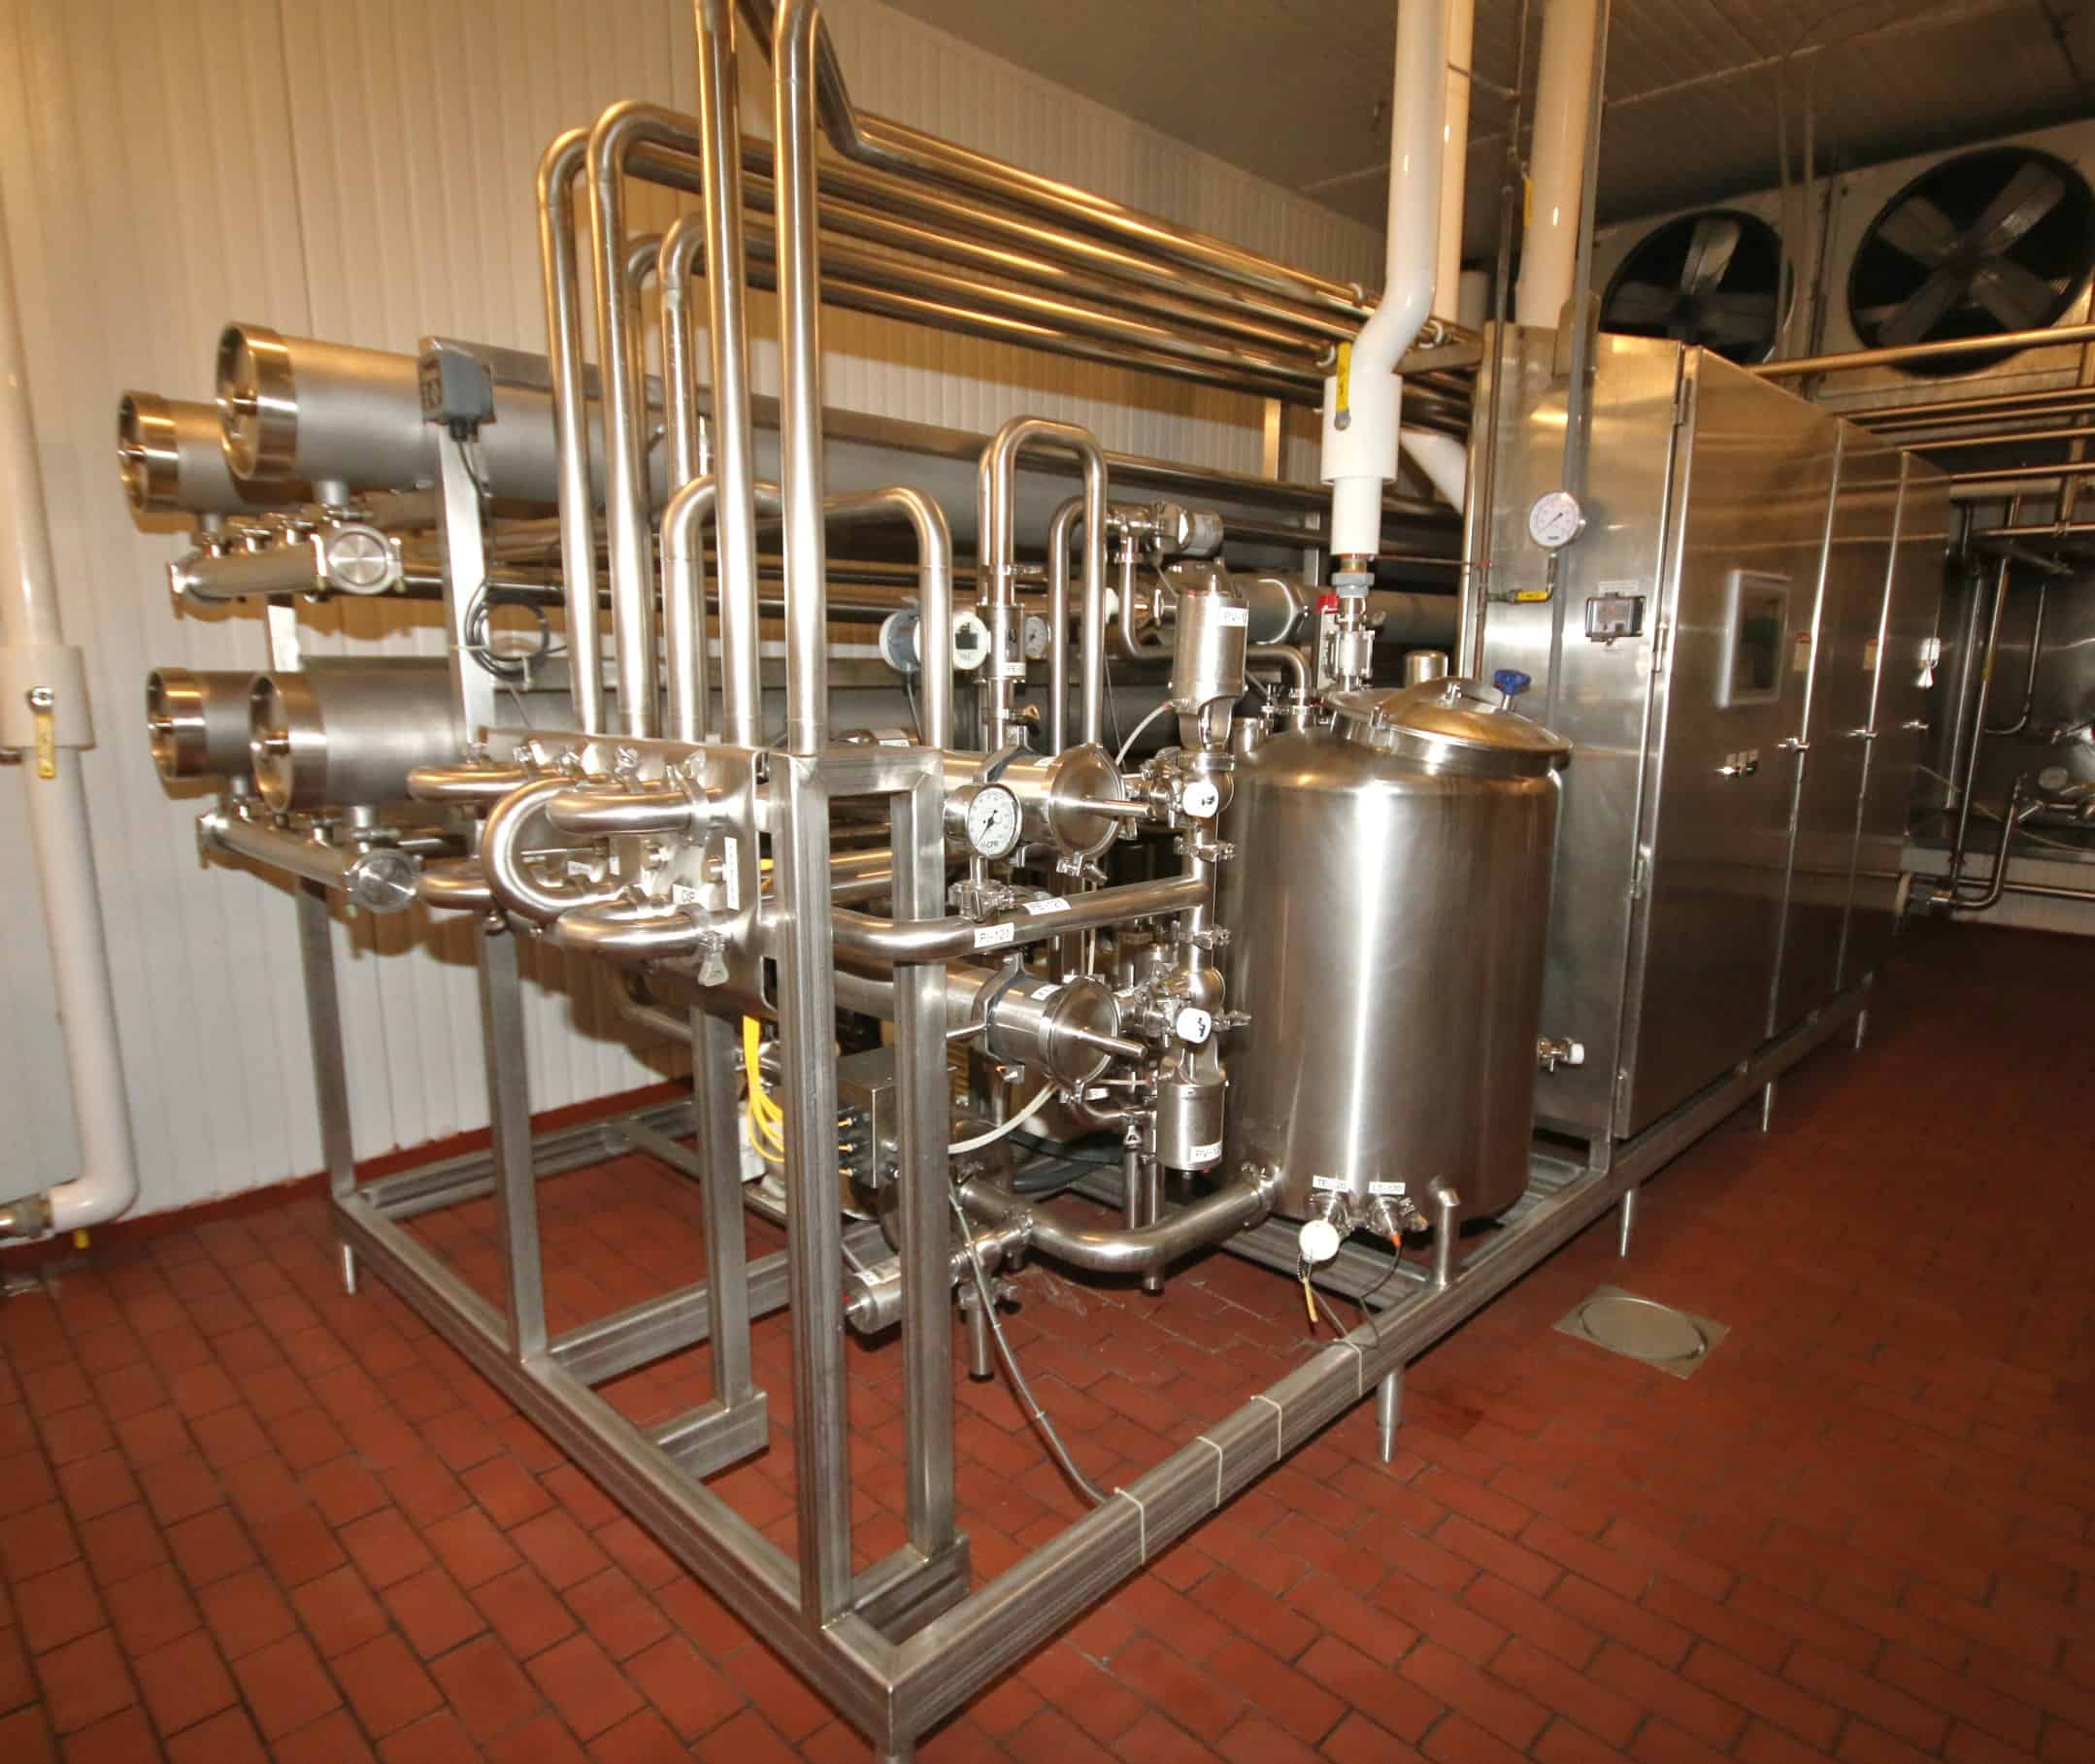 "2010 Complete Filtration Resources (CFR) 4 – Pass S/S RO System, Job # 13715-0002, Complete with (4) 8"" x 18 ft L S/S Tubes, Includes 100 Gal. S/S Tank, (2) S/S Shell & Tube Heat Exchangers, (5) Alfa Laval Centrifugal Pumps up to 40 hp with AB VFD's,"